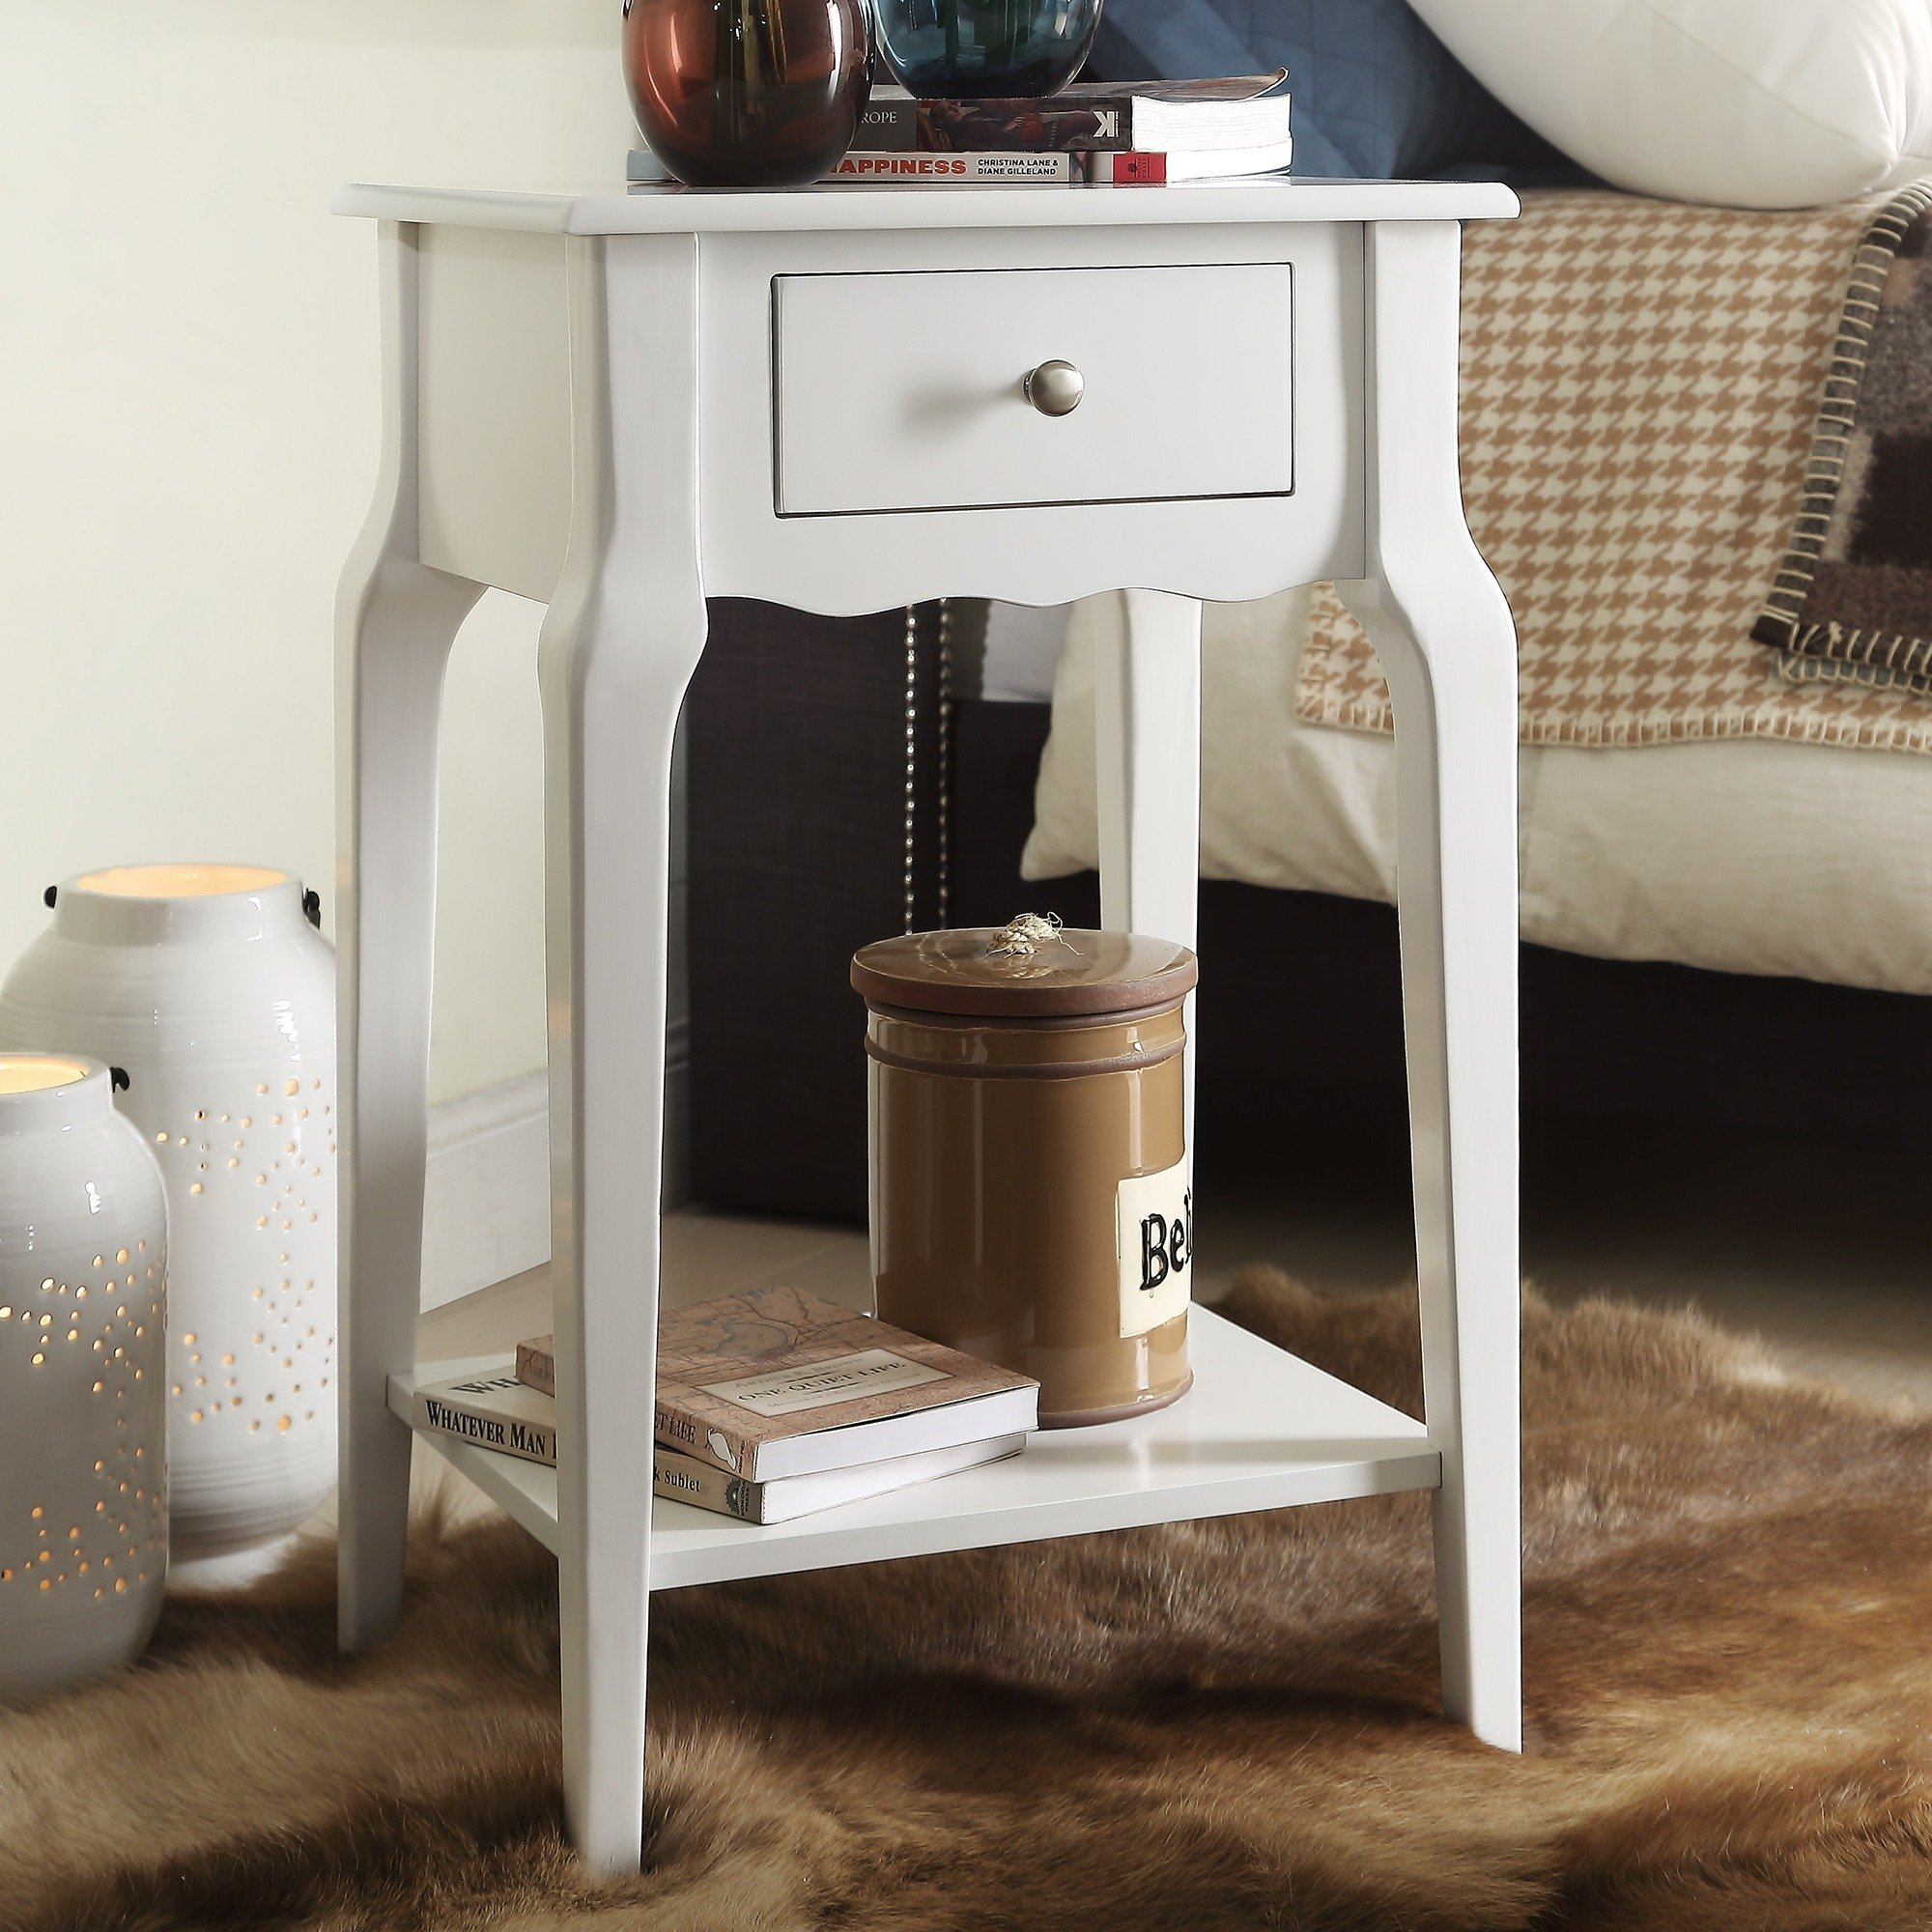 daniella drawer wood storage accent end table inspire bold one free shipping today dale tiffany northlake lamp elastic covers pottery barn black floor threshold transitions